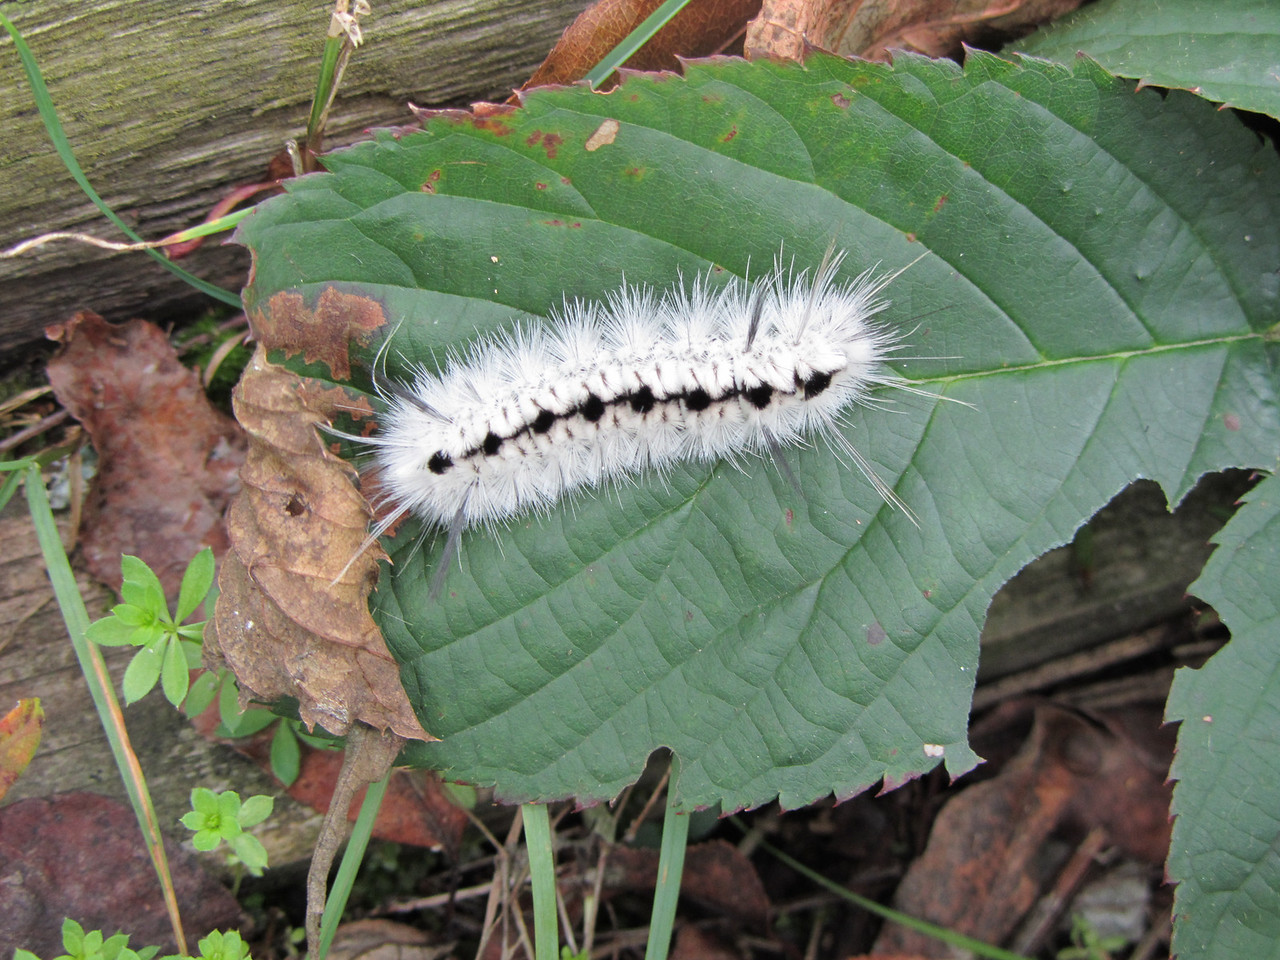 This catepillar is the future Hickory Tussock Moth. DO NOT TOUCH.<br /> <br /> Lophocampa caryae, the Hickory Tussock Moth or Hickory Halisidota, is a moth in the family Arctiidae. Like most species in its family, the caterpillars acquire chemical defenses from their host plants. The behaviour and aposematic coloration of the larvae (caterpillars) also suggests chemical protection in this stage, although they have not been analyzed for alkaloid or cardenolide content. Formerly placed in the genus Halysidota.<br /> <br /> Life cycle: One generation per year<br /> <br /> Larva: Caterpillars are covered all over in long hairlike setae, in spreading tufts. Most are white, but there are black tufts along the middle of the back, and four long black hair pencils (two near the front, and two near the back). These hairs cause itchy rashes in some people. They are microscopically barbed and may cause serious medical complications if the barbed hairs are transferred from the hands to the eyes. There are black spots along the sides, and the head capsule is black. They can bite.<br /> <br /> Mature caterpillars are found from July to September. Caterpillars feed in groups of 100 or so in the early instars, skeletonizing the leaves. They become solitary later. Grows to a length of 4.5 cm.<br /> <br /> Pupa:The cocoon is loose and has 'hairs' woven into it, and overwinters in the leaf litter.<br /> <br /> Adults: Fore-wings are yellowish-brown, marked with white splotches in a kind of stained glass effect. The hindwings are mostly white. The body is 'hairy' and pale brown. Moths fly in May and June